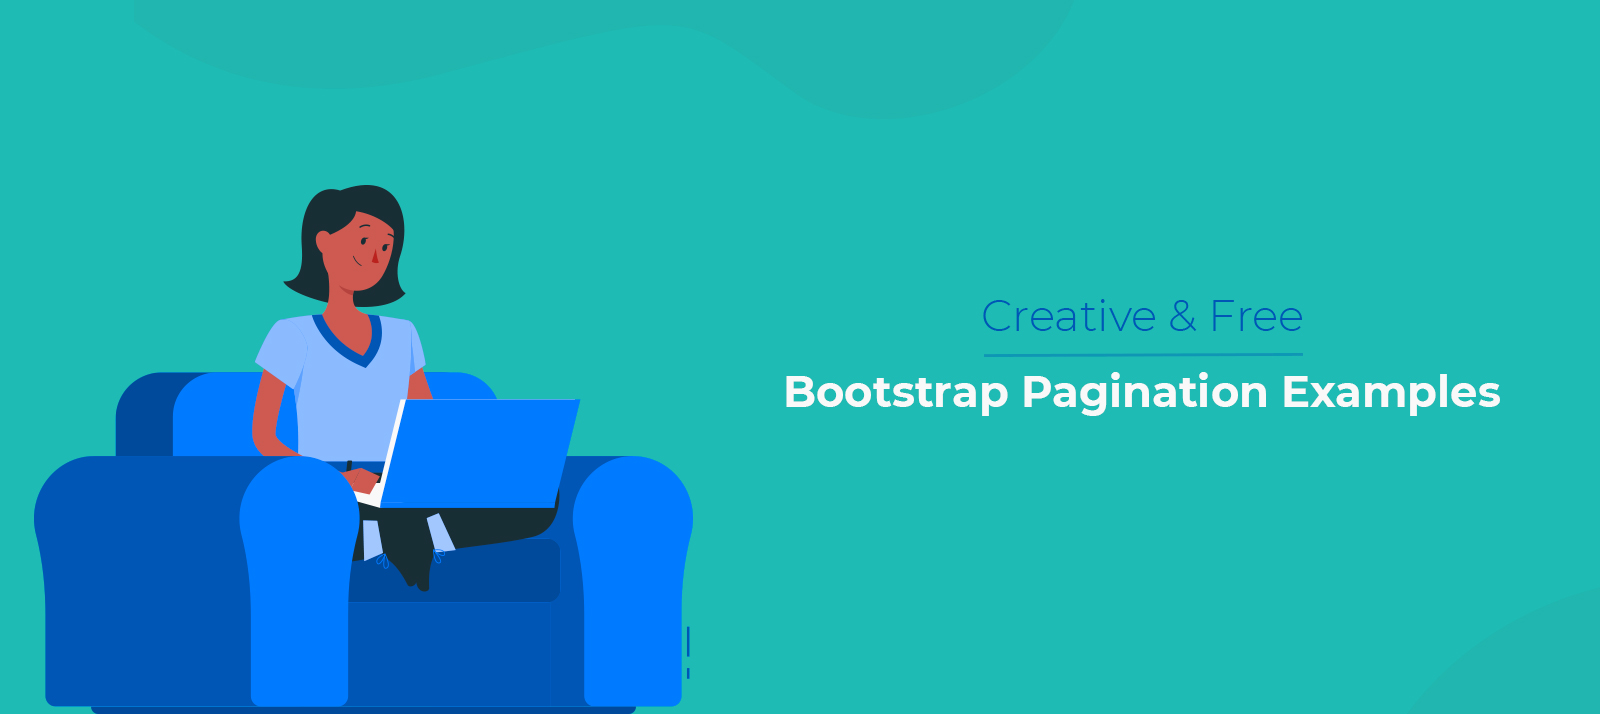 10 Creative and Free Bootstrap Pagination Examples Sure To Leave You Impressed